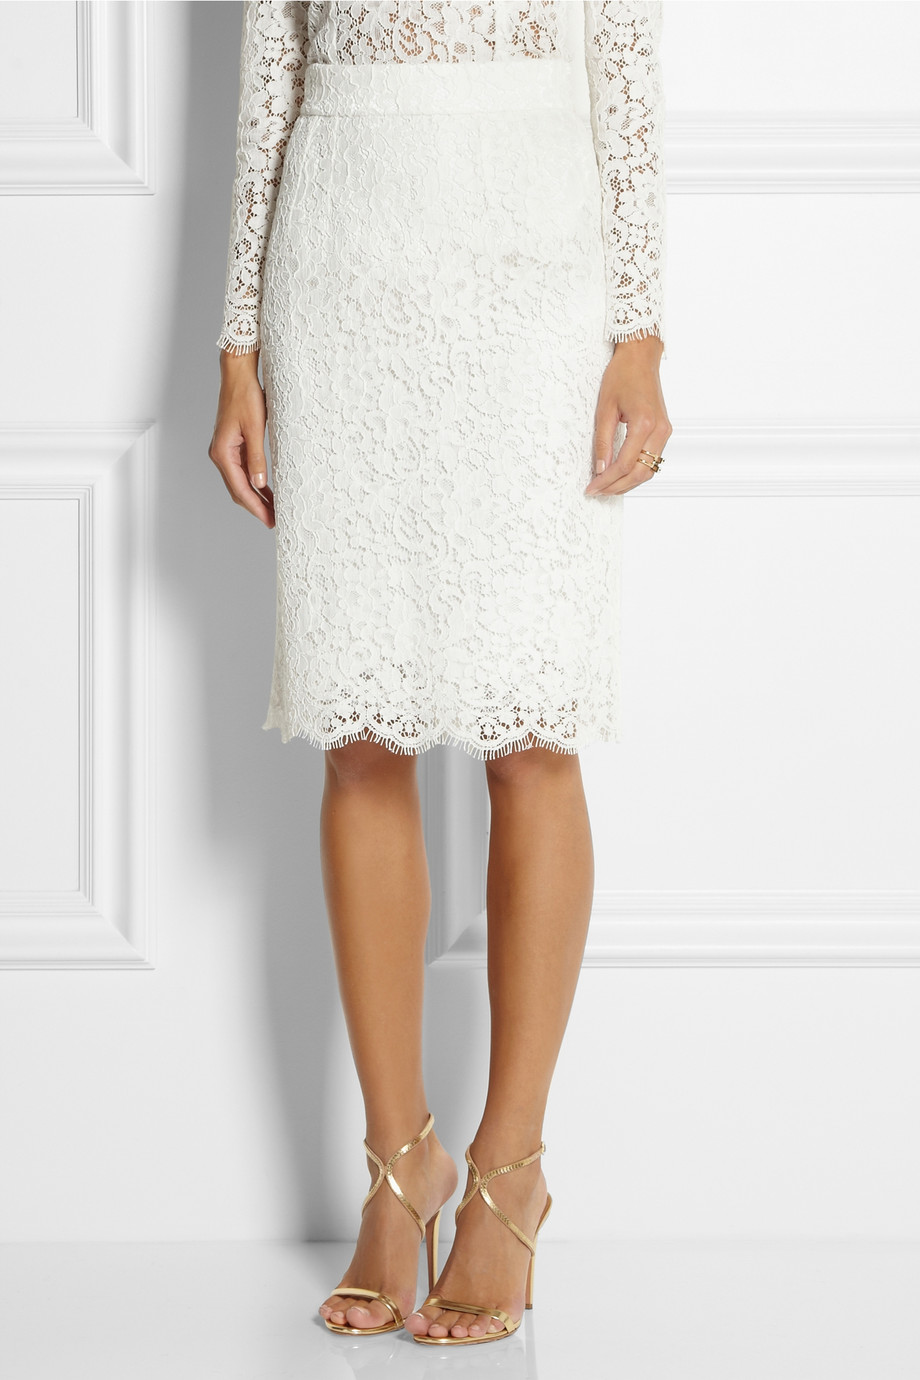 Dolce & gabbana Cottonblend Lace Pencil Skirt in White | Lyst